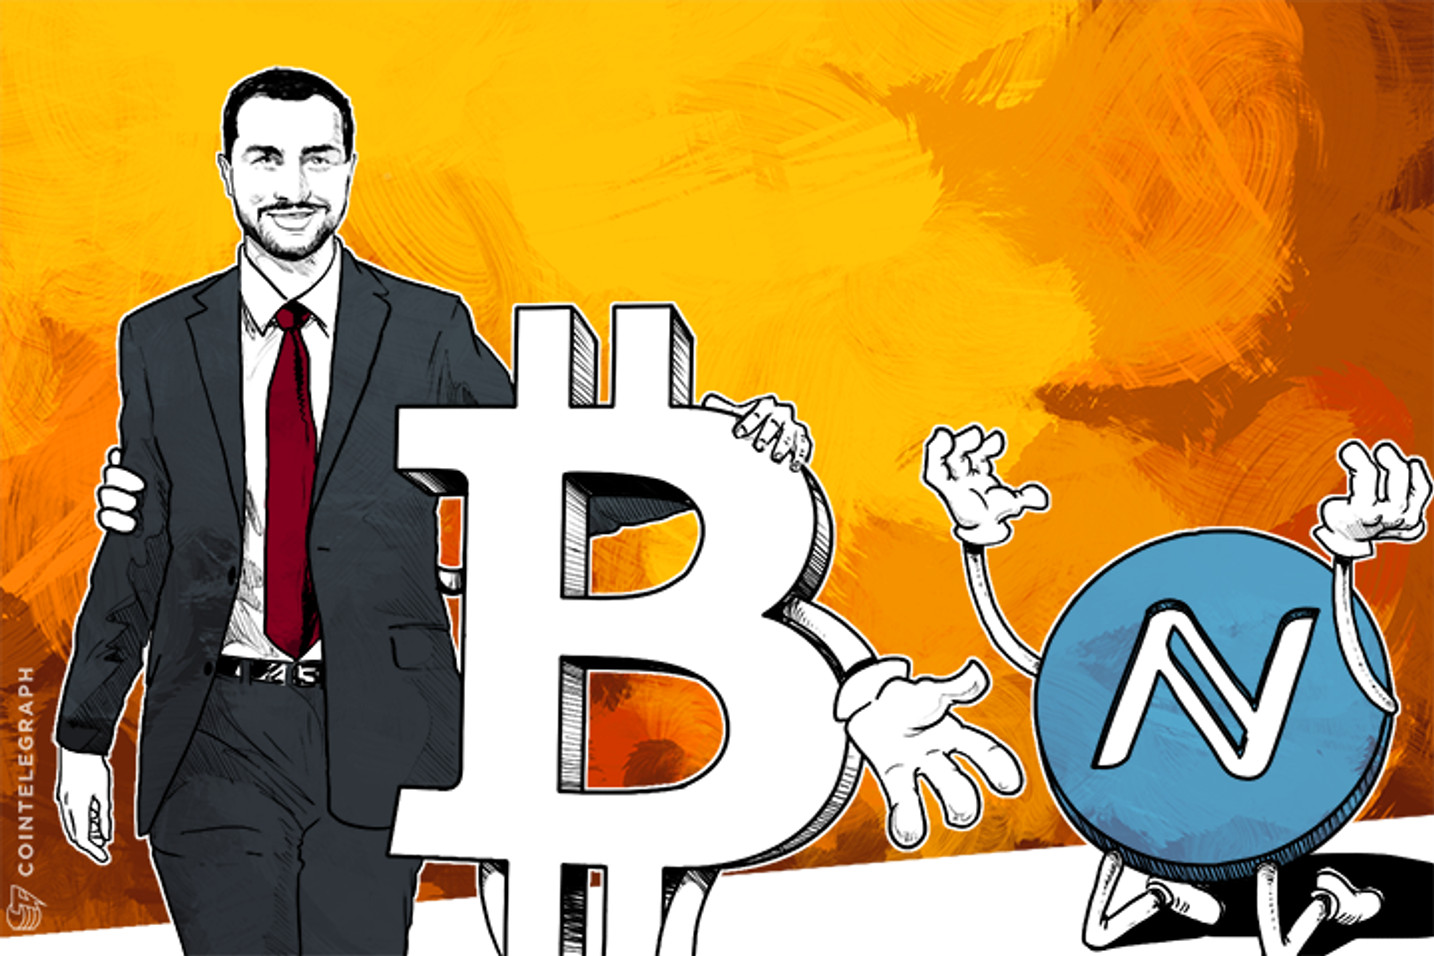 Onename Drops Namecoin, Switches to Bitcoin